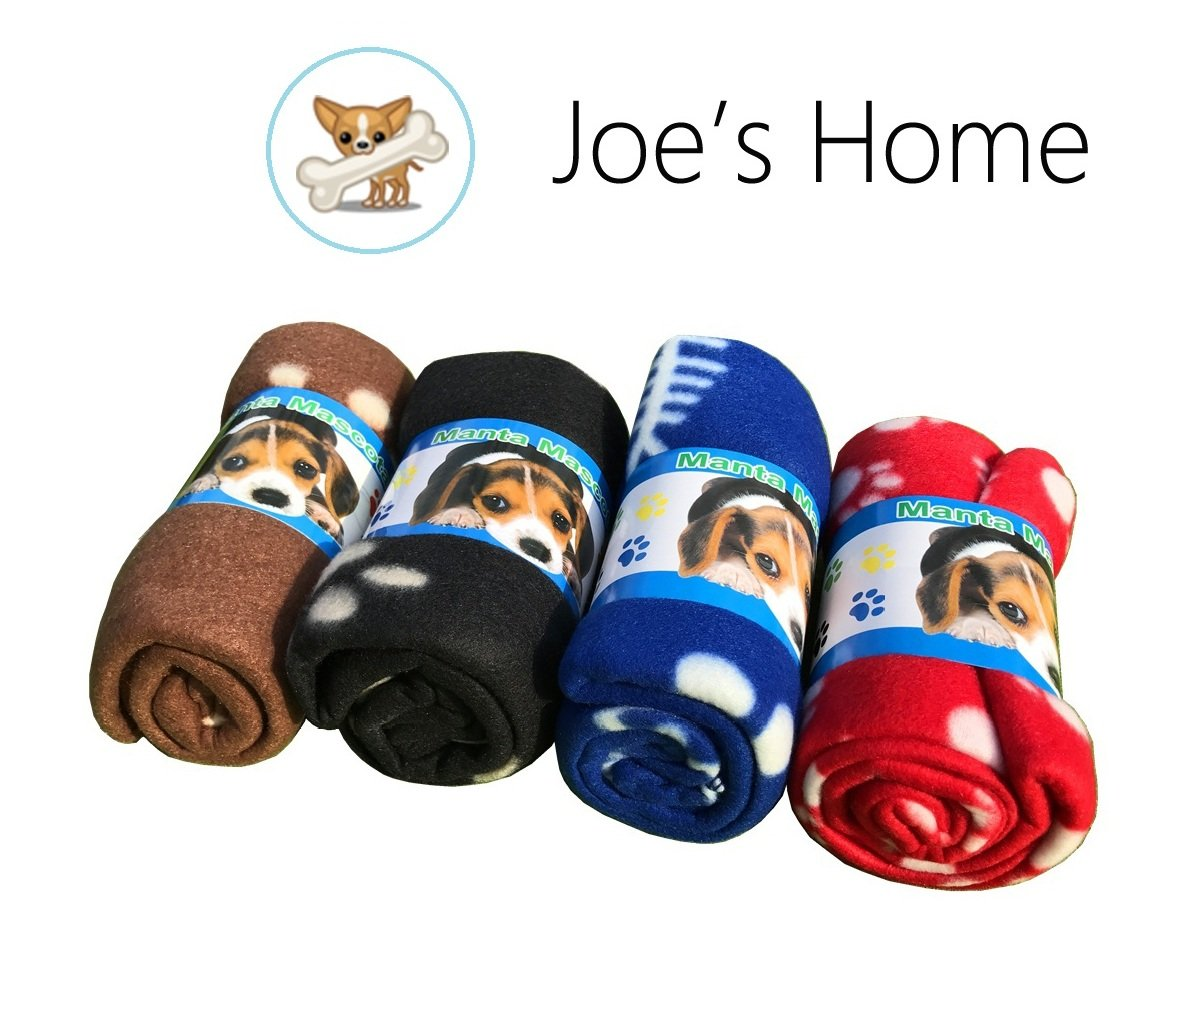 Pet Puppy Dog Blanket for Small Medium Large Dogs, 4 Pack - Red Blue Black Brown, Warm Soft Cozy Cat Dog Blankets and Throws Winter Pet Sleep Mat Pad Bed Cover with Paw Print (L - 32.3'' x 43.3'') by Joe's Home (Image #1)